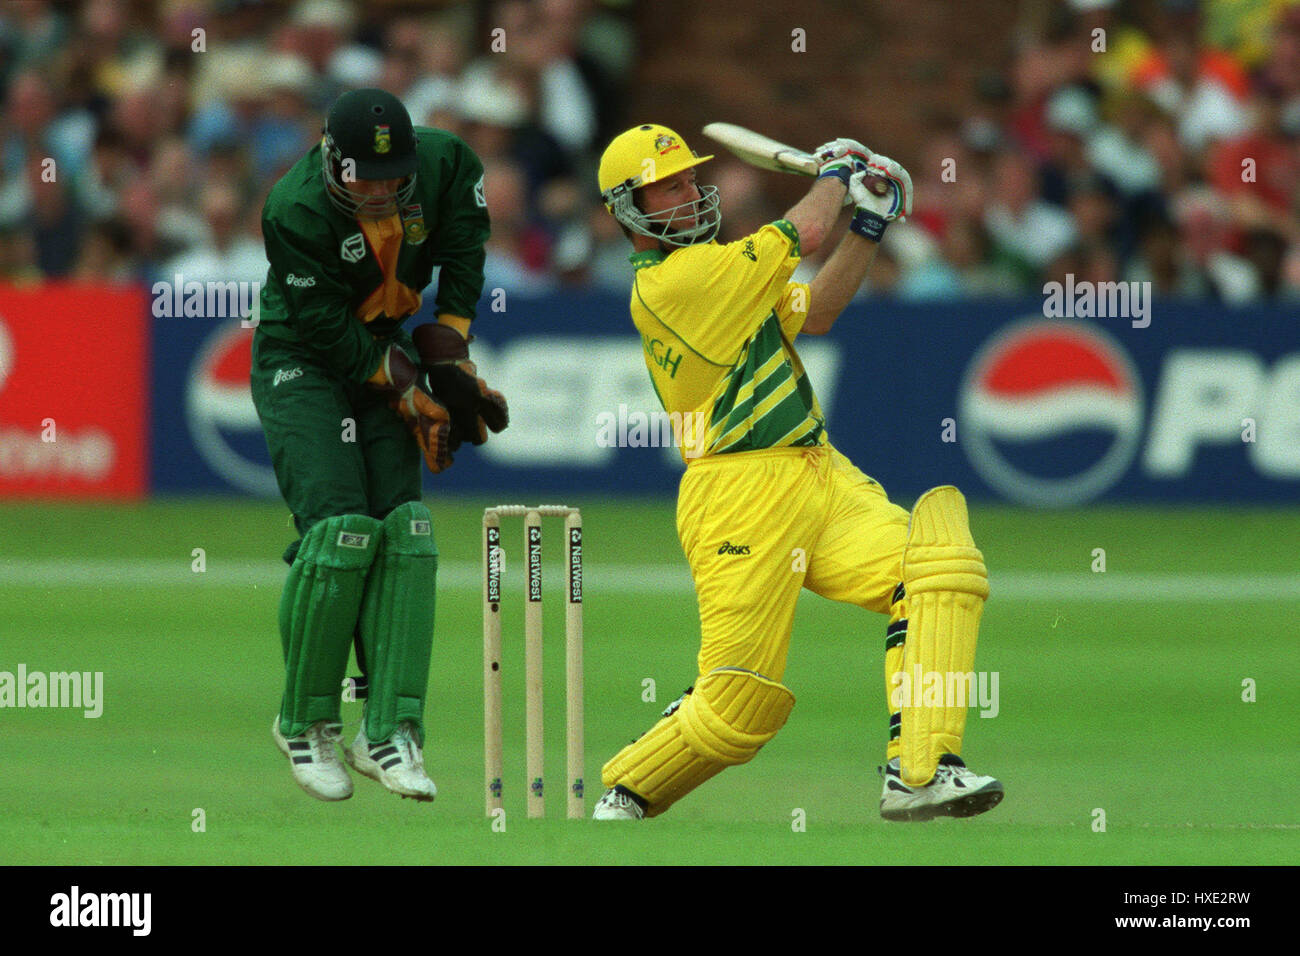 STEVE WAUGH DURING HIS 120 AUSTRALIA V SOUTH AFRICA 13 June 1999 - Stock Image